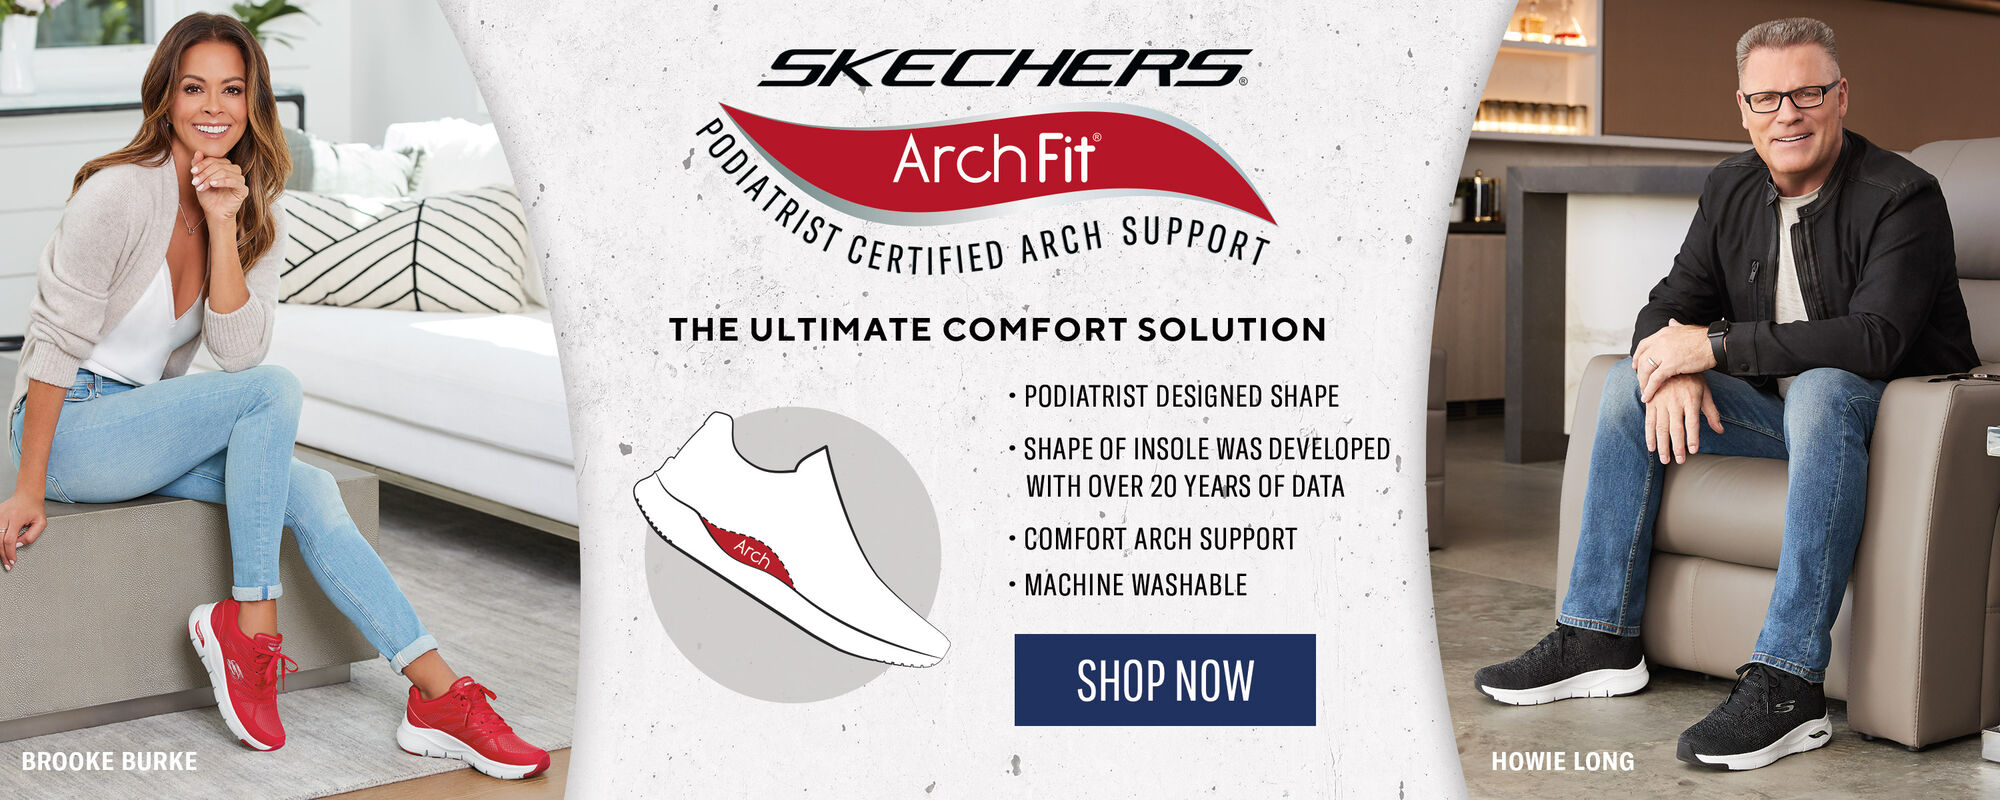 Skechers Arch Fit - Podiatrist Certified Arch Support - The Ultimate Comfort Solution - Podiatrist Designed Shape, Shape of insole was developed with over 20 years of data, Comfort arch support, Machine Washable, Shop Now - Howie Long and Brooke Burke